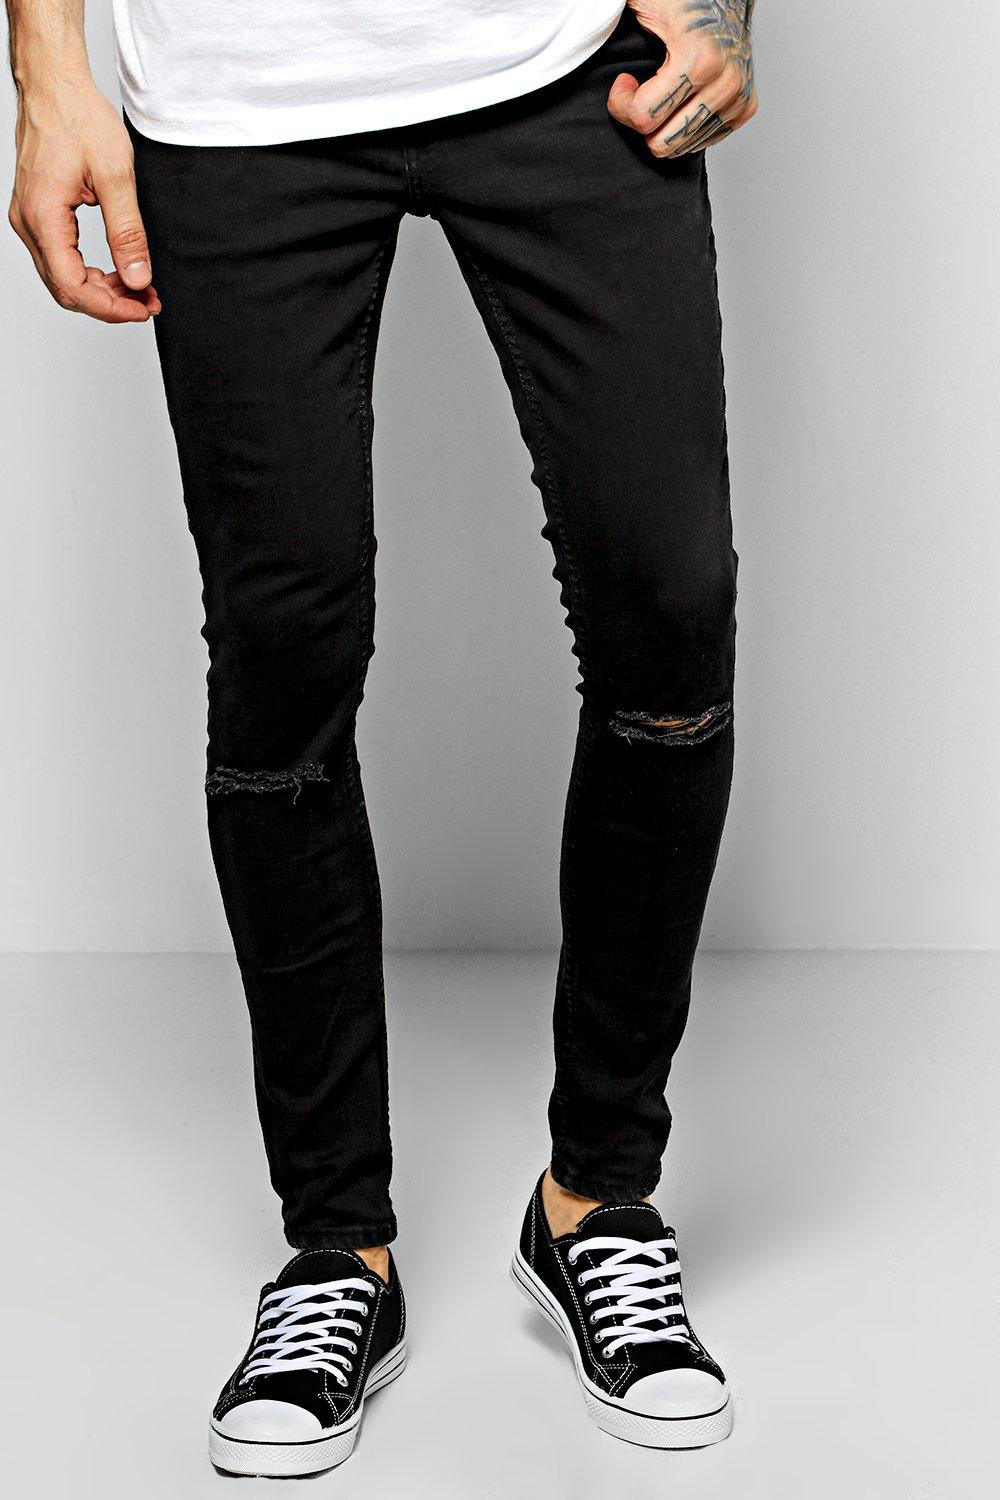 fed8d4d6f537 Super Skinny Fit Jeans With Ripped Knees. Hover to zoom